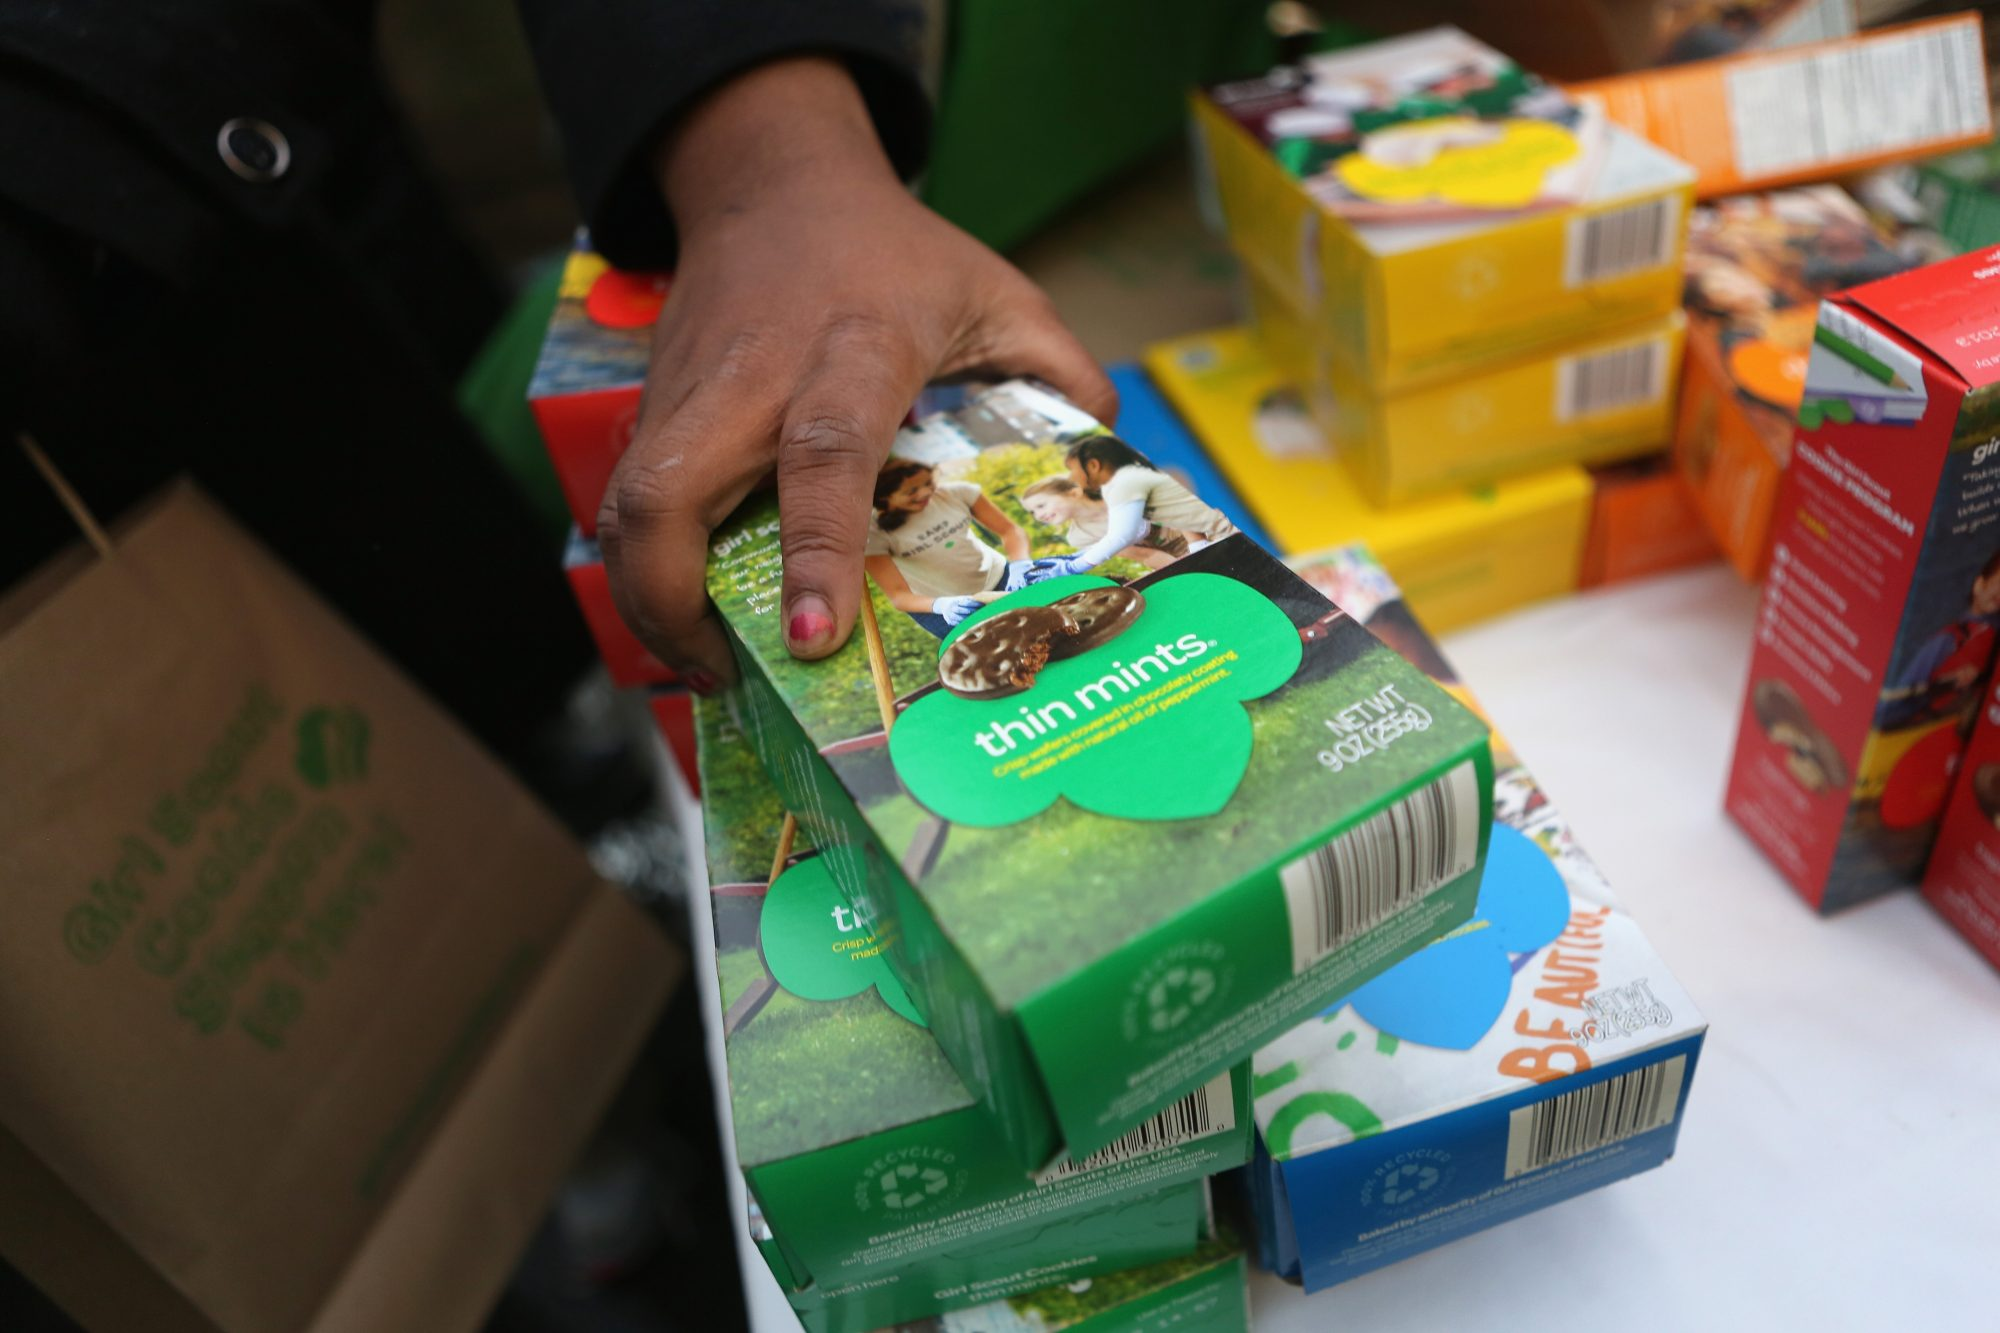 NEW YORK, NY - FEBRUARY 08: Girl Scouts sell cookies as a winter storm moves in on February 8, 2013 in New York City. The scouts did brisk business, setting up shop in locations around Midtown Manhattan on National Girl Scout Cookie Day. (Photo by John Moore/Getty Images)